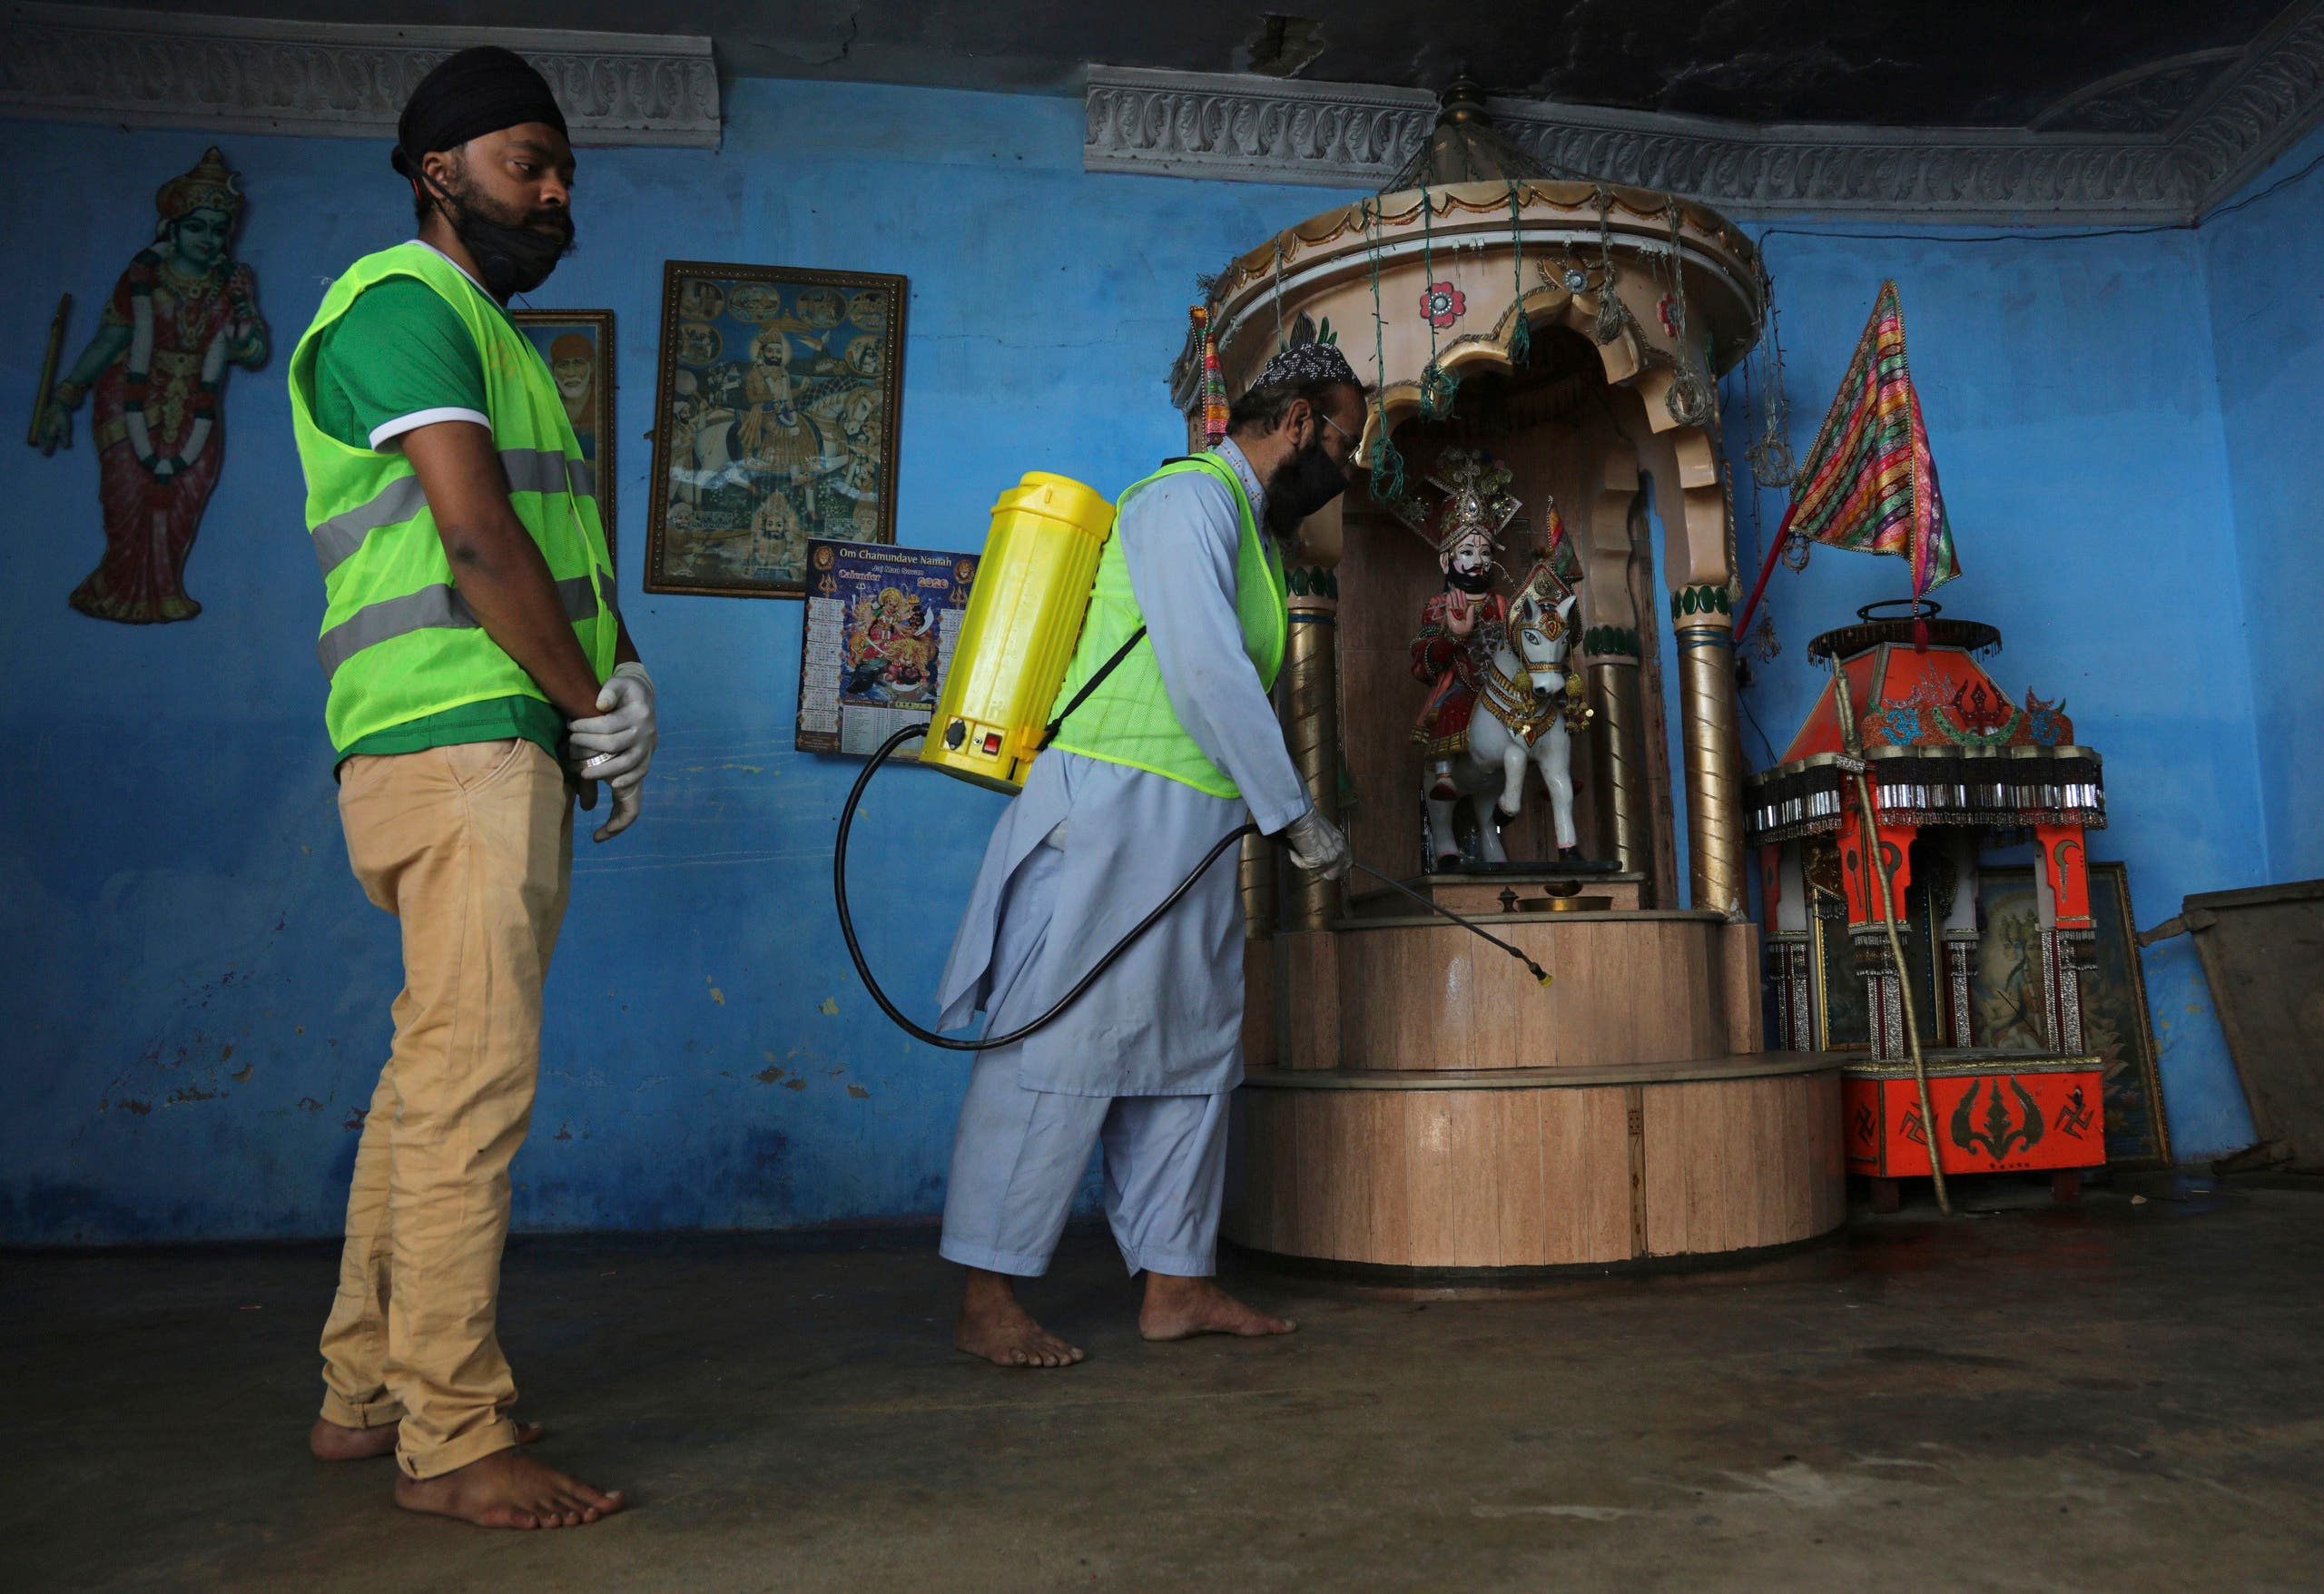 A volunteer disinfects the Hindu temple to contain the outbreak of the coronavirus, in Karachi, Pakistan on March 30, 2020. (AP)